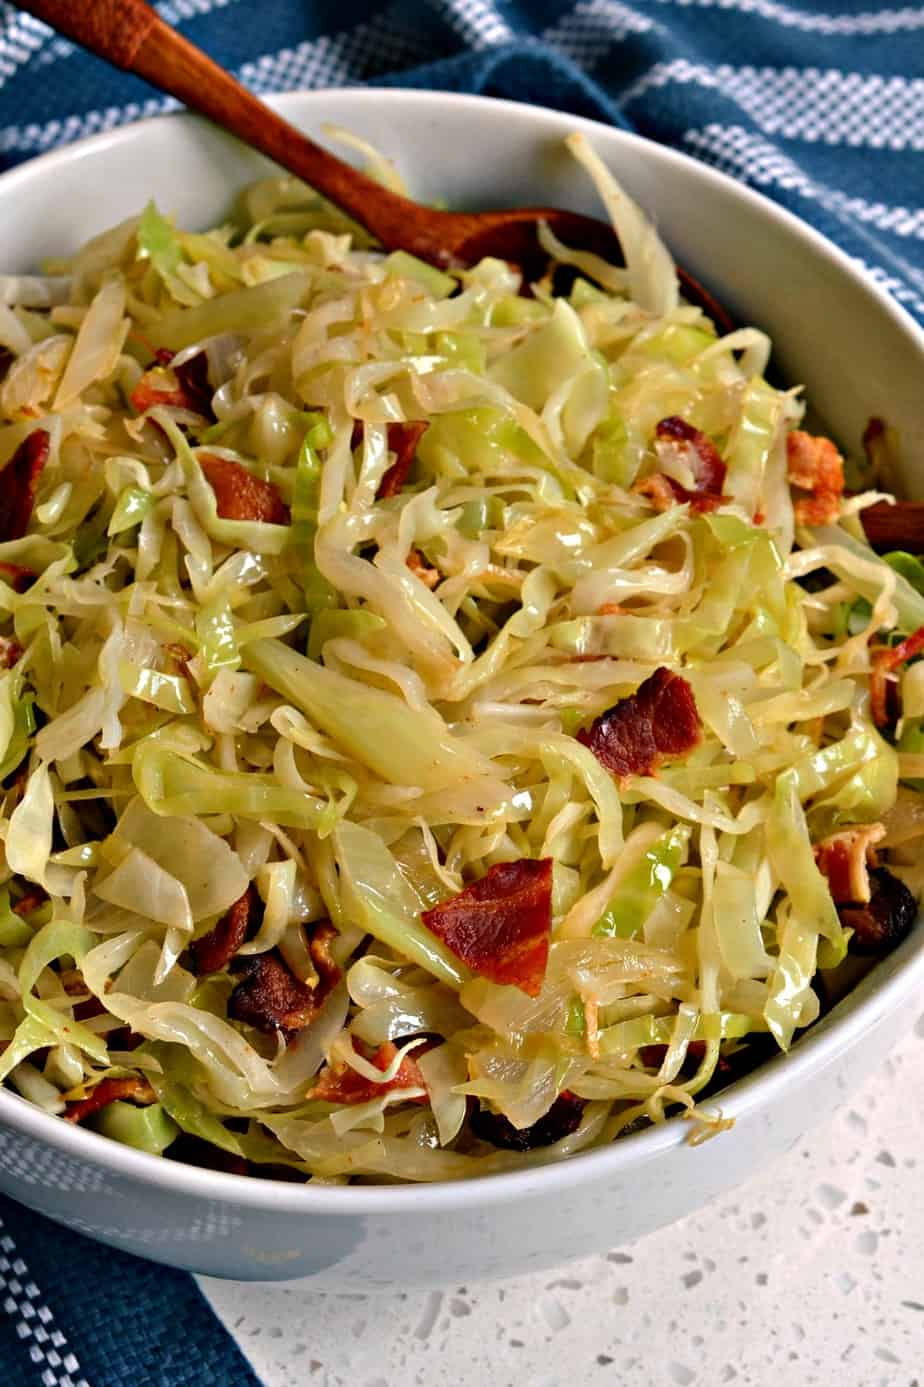 Southern Fried Cabbage is a simple six ingredient recipe that brings cabbage, onions and bacon together in perfect harmony.